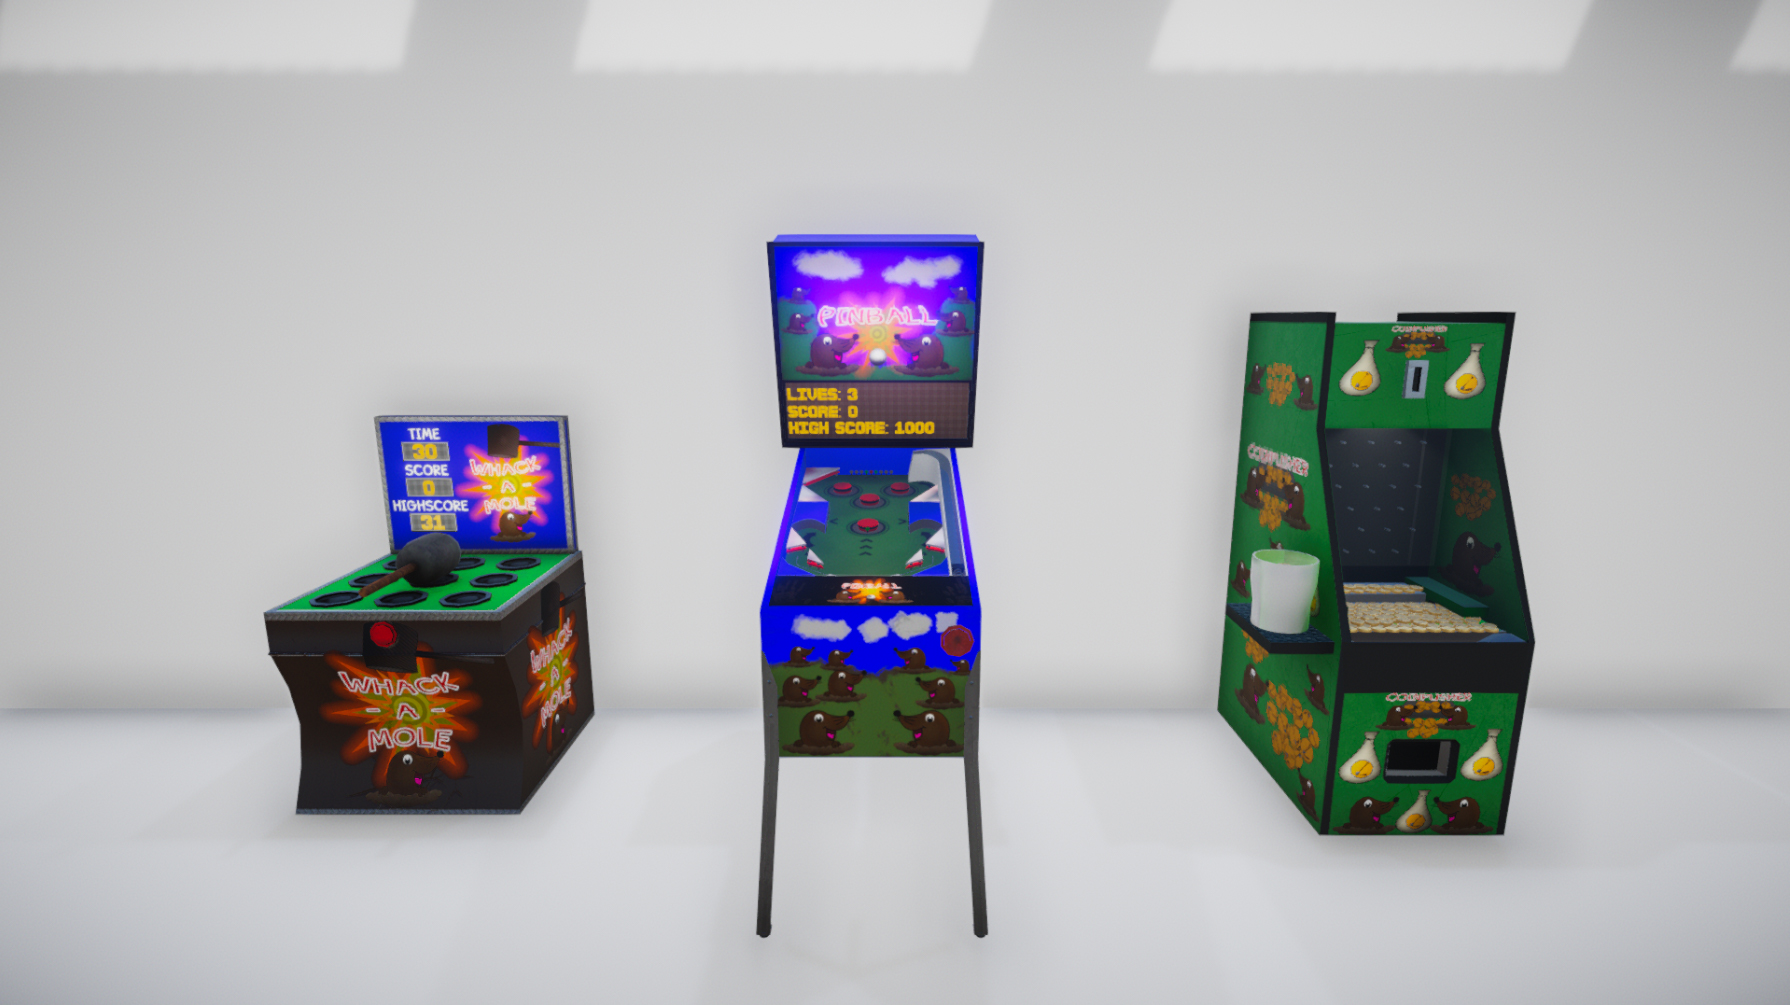 Accessibility Arcade in VR